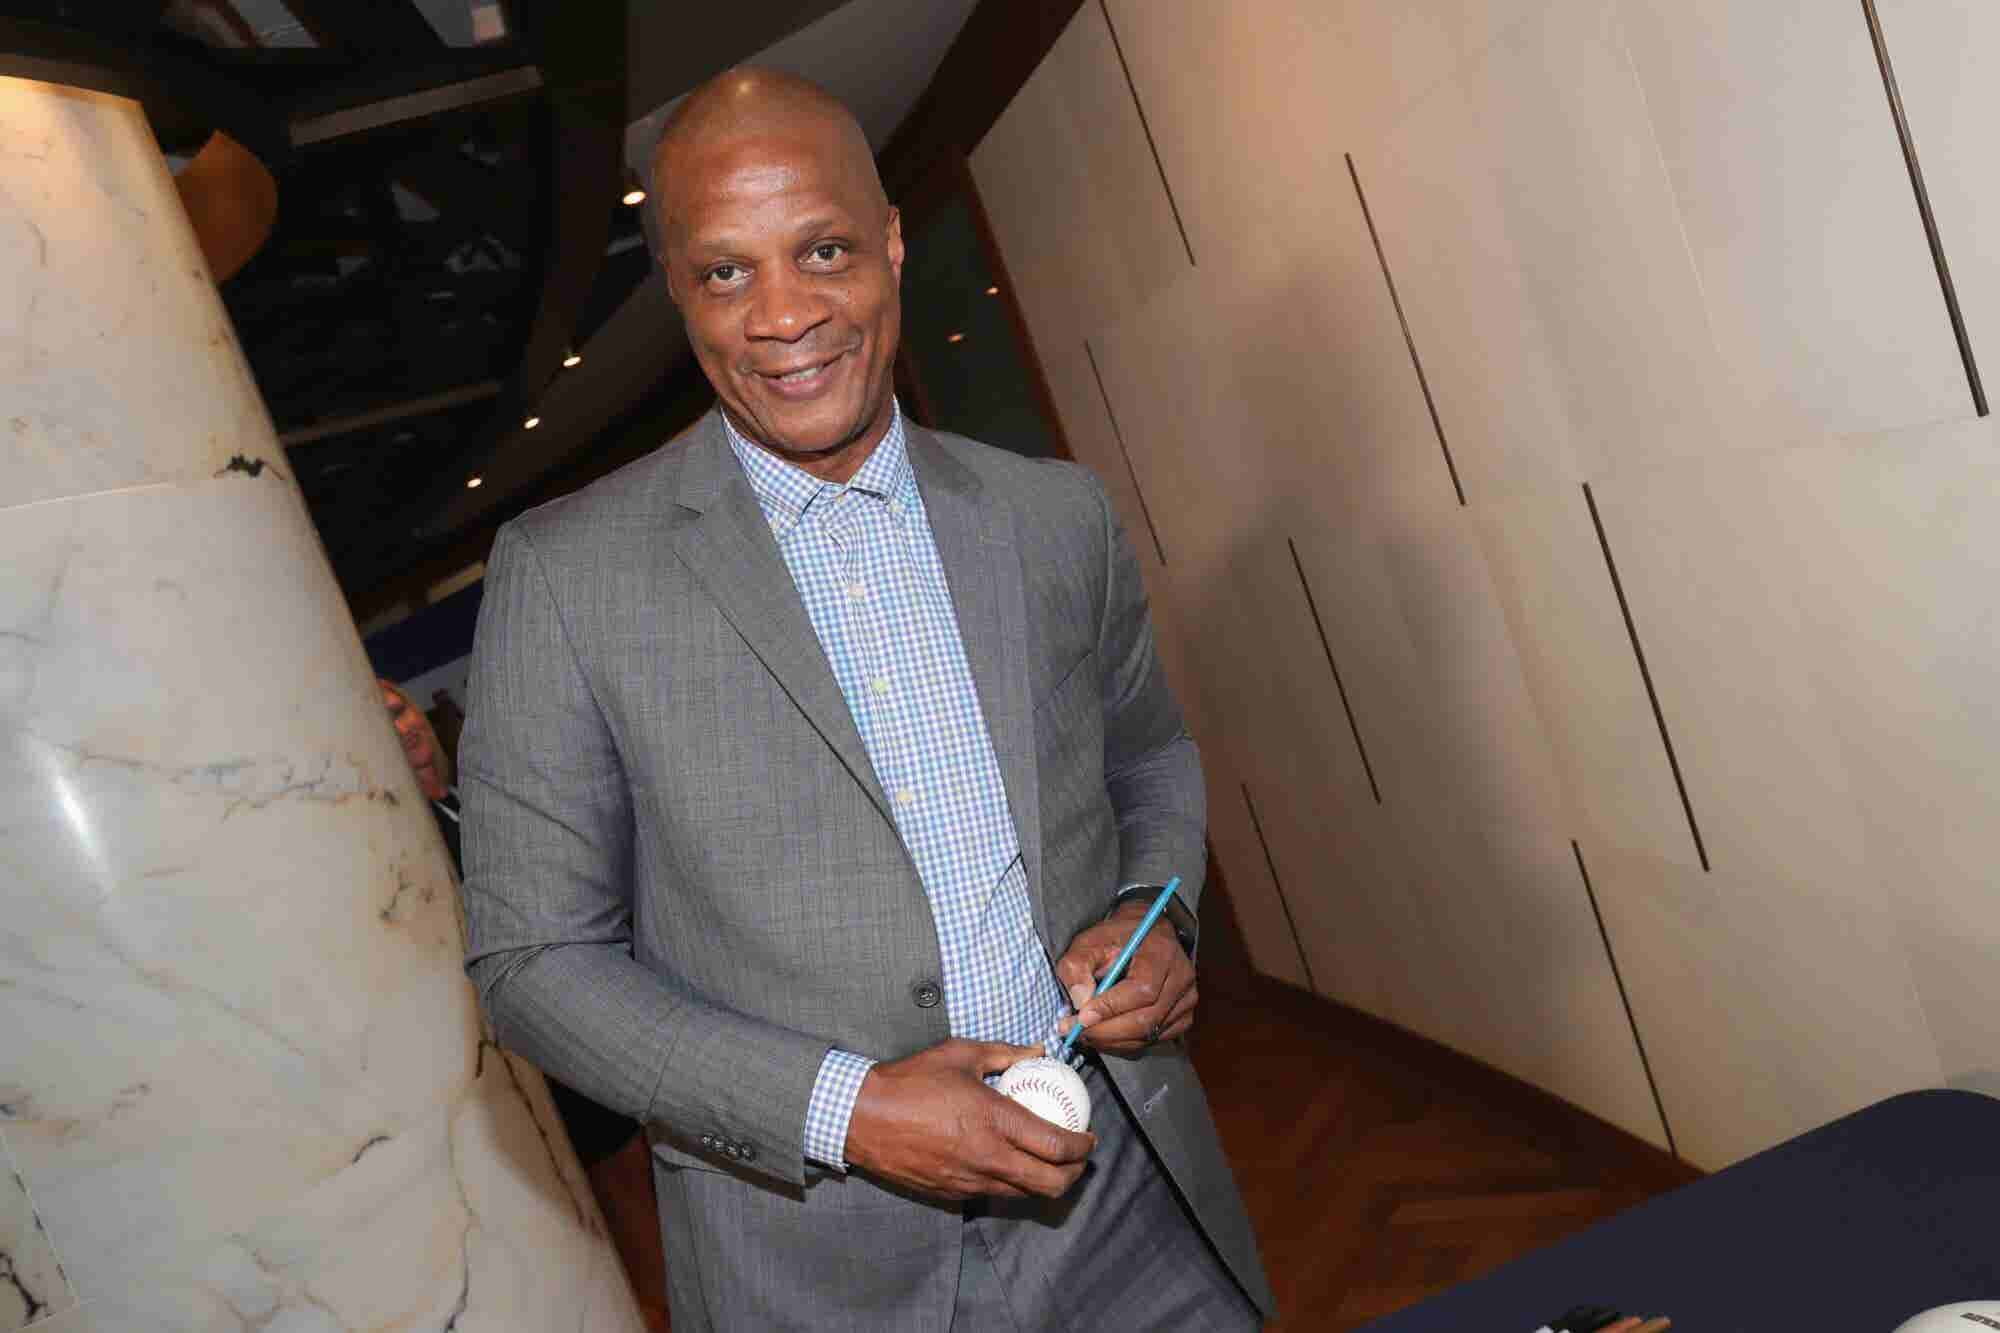 Darryl Strawberry Sees No Difference Between Medical Cannabis and Opioids